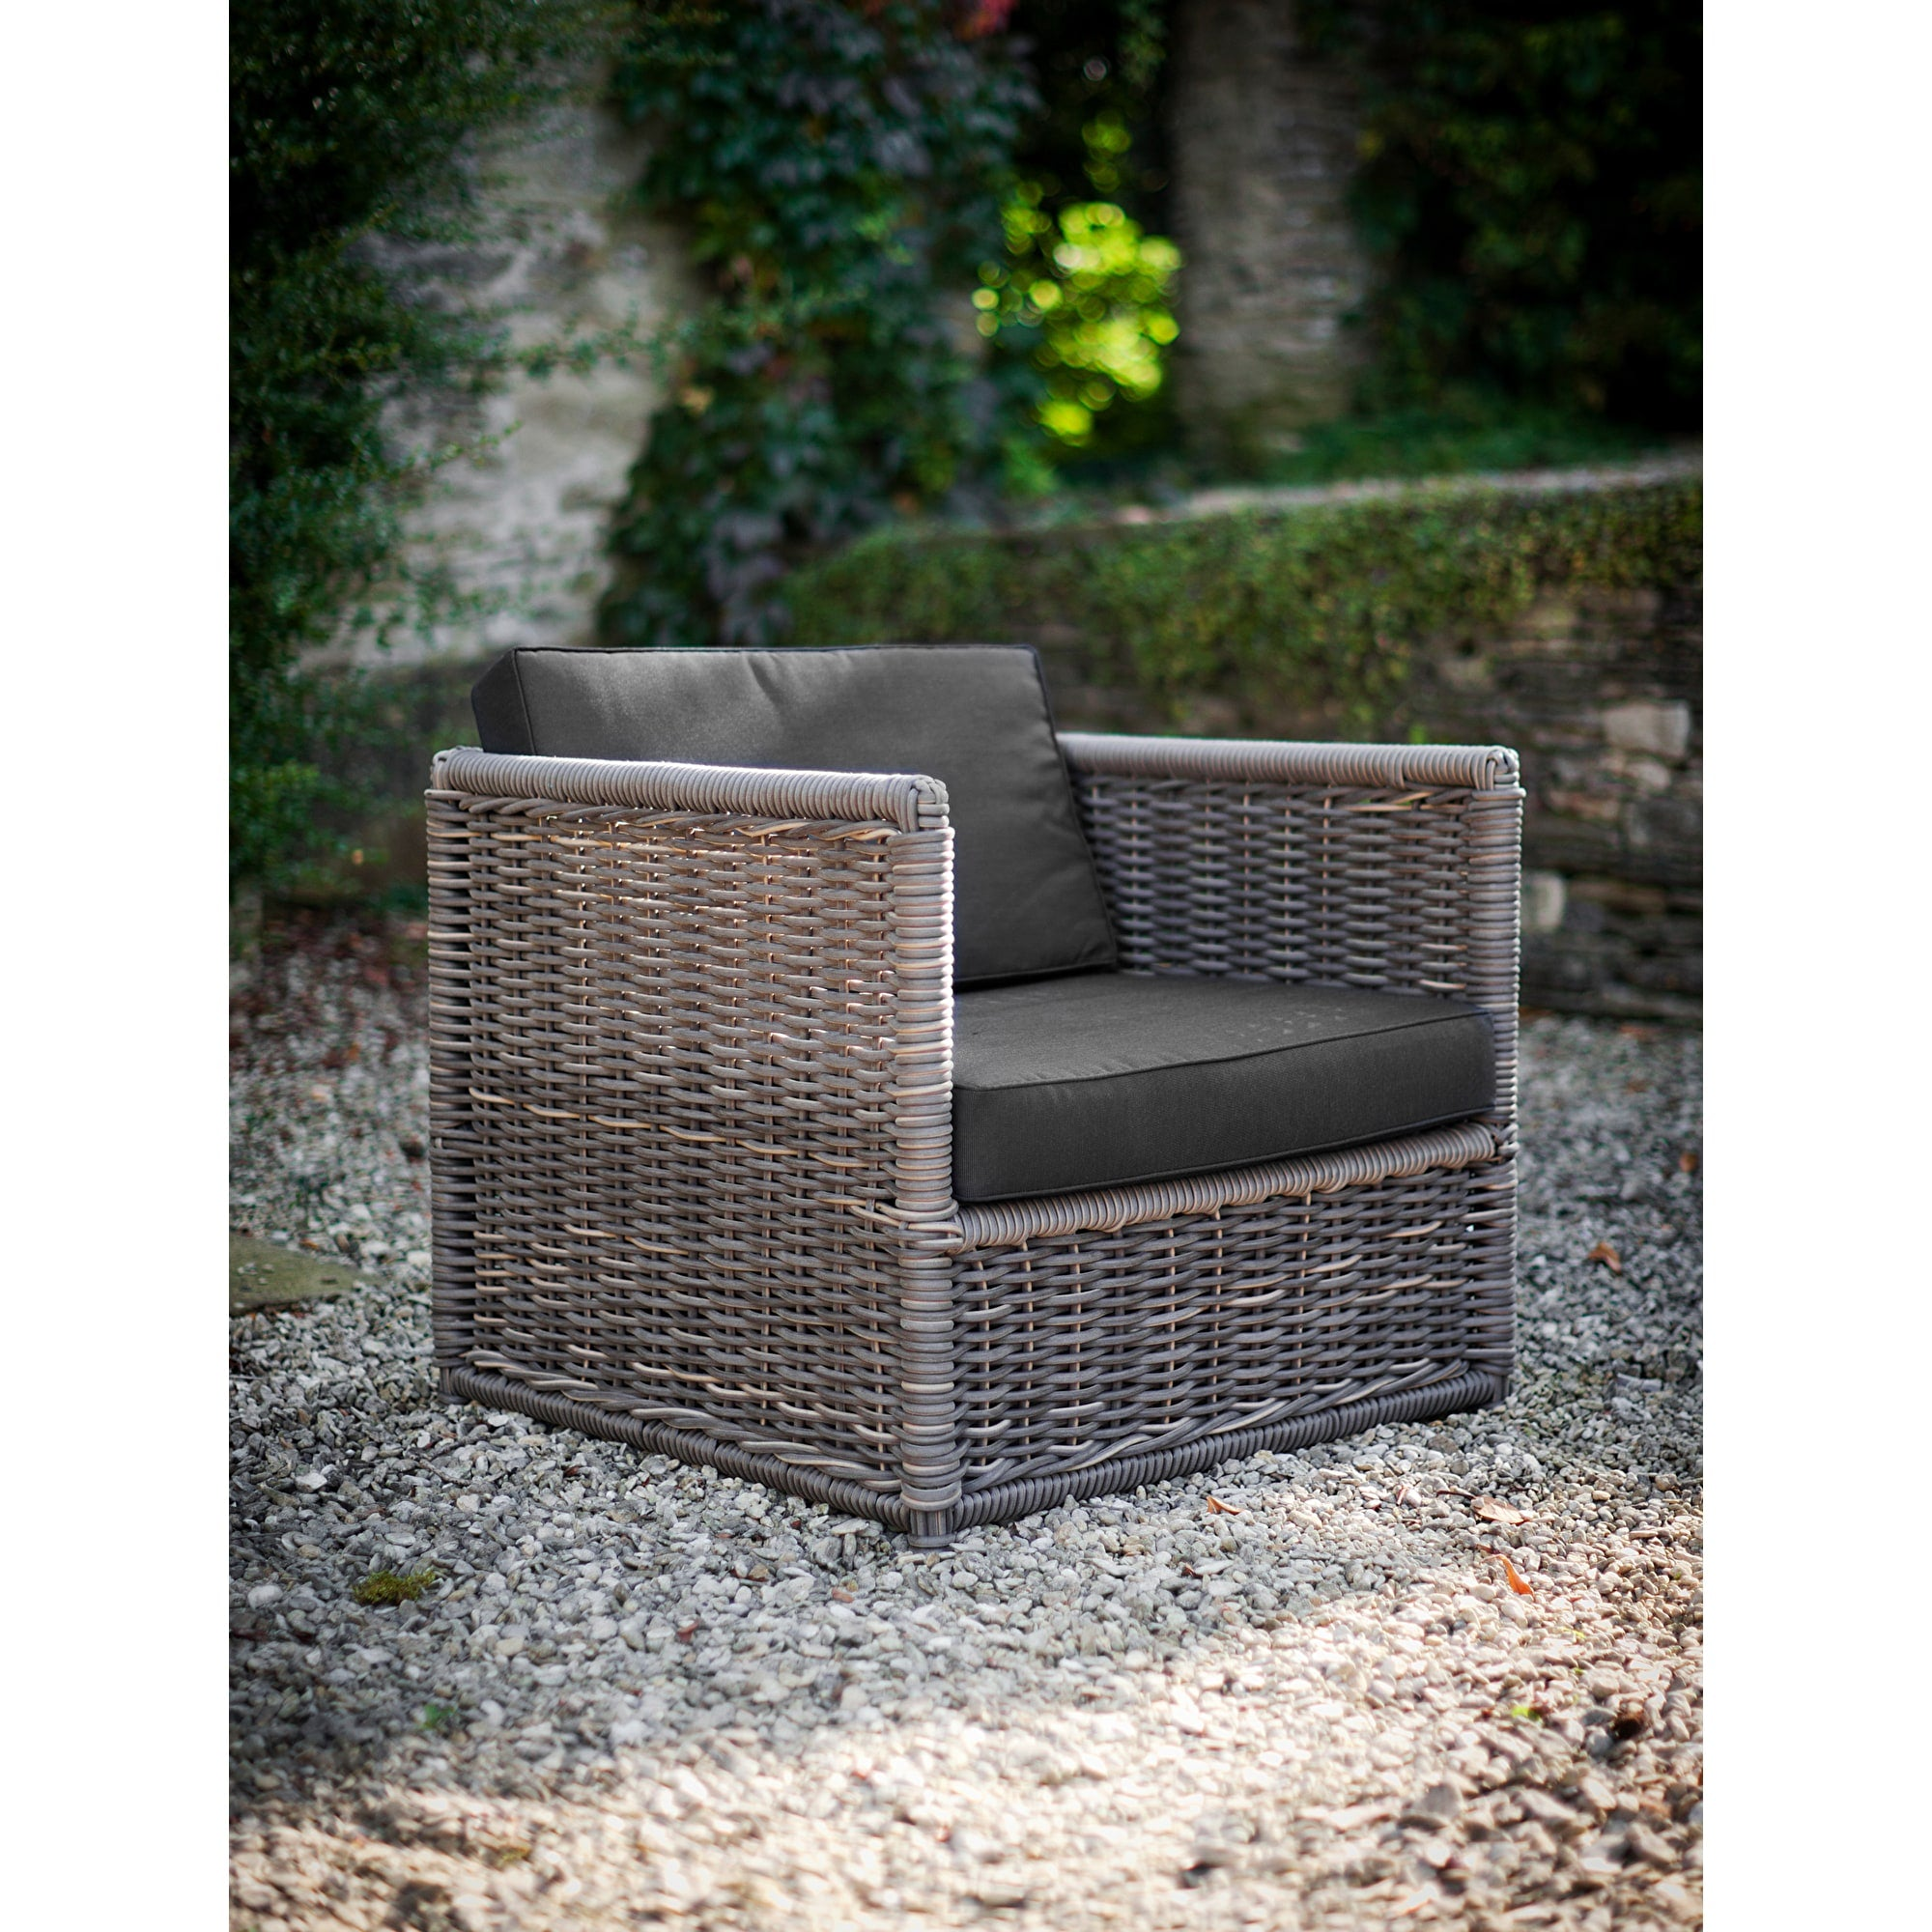 Hardingstone Rattan Sofa Set